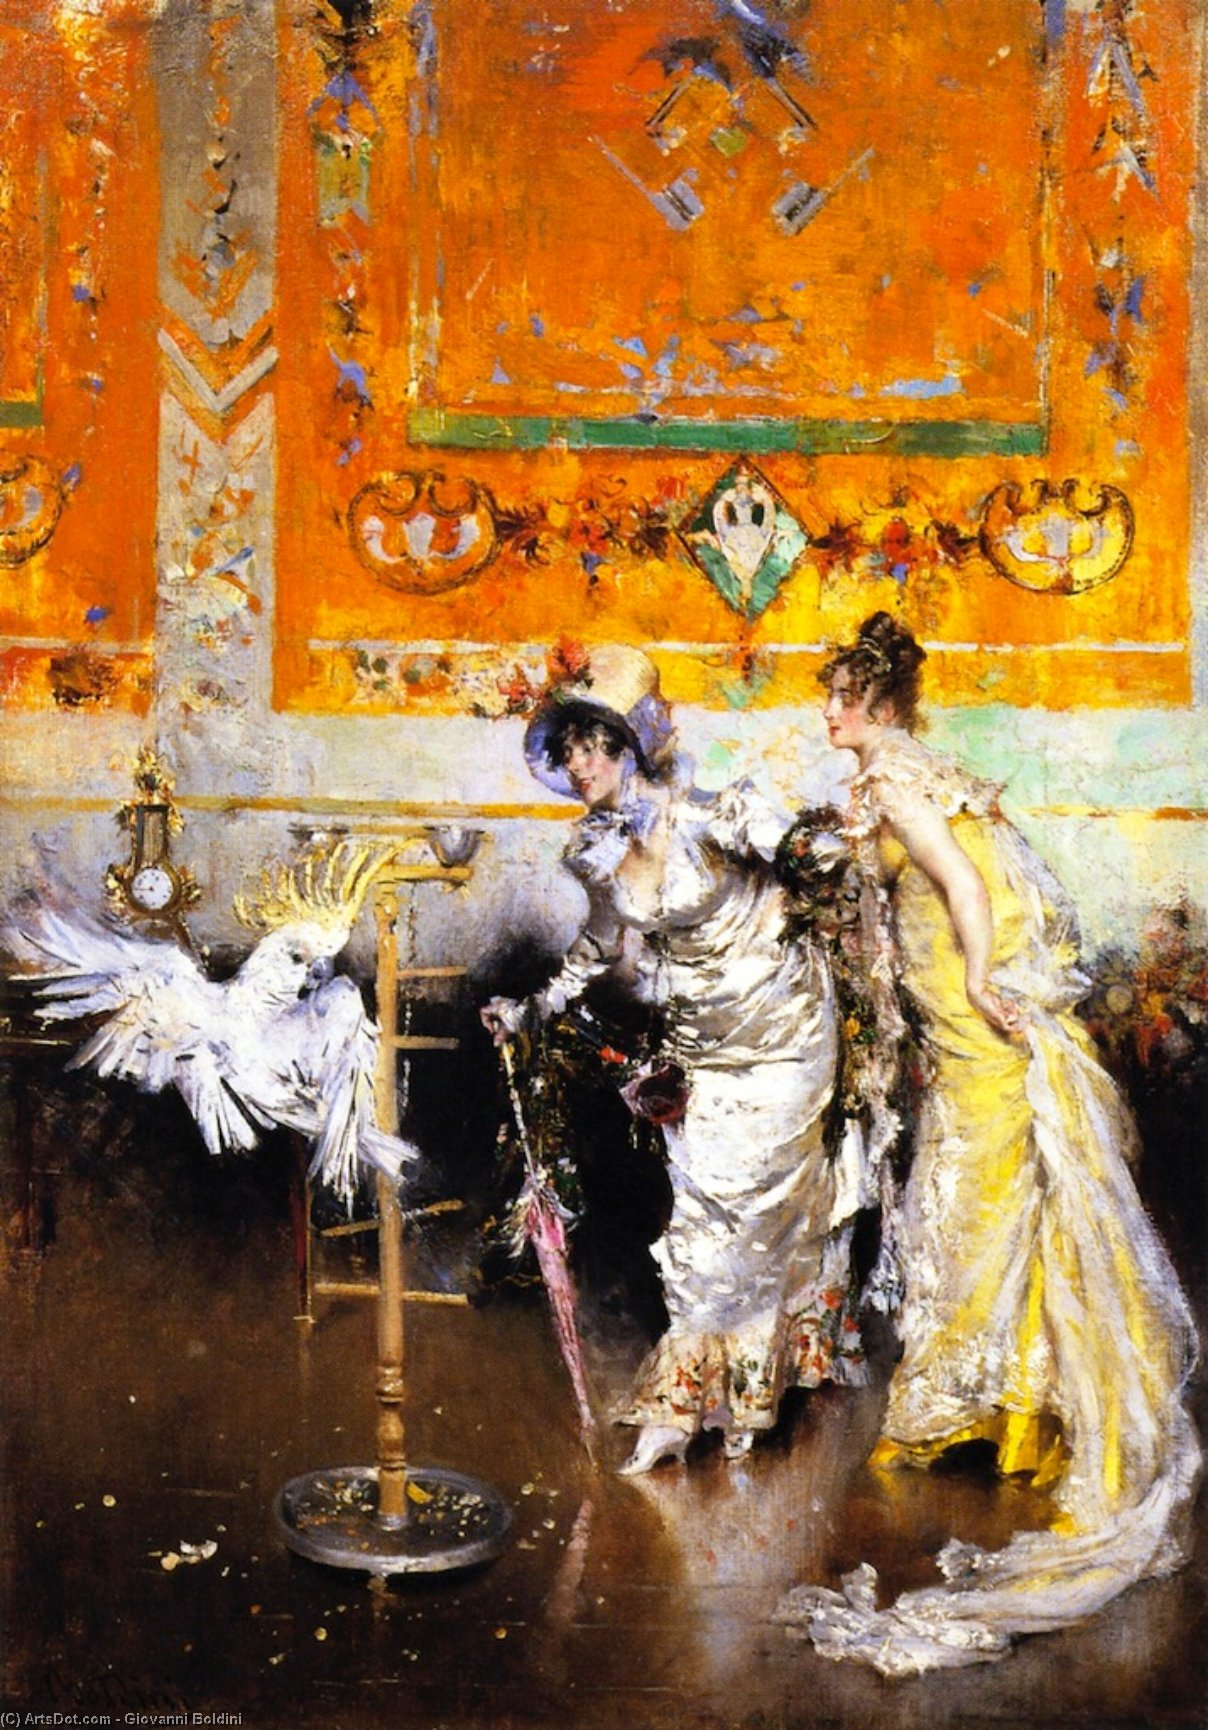 Wikioo.org - The Encyclopedia of Fine Arts - Painting, Artwork by Giovanni Boldini - Two Women with a Parrot (also known as Teasing the Parrot)